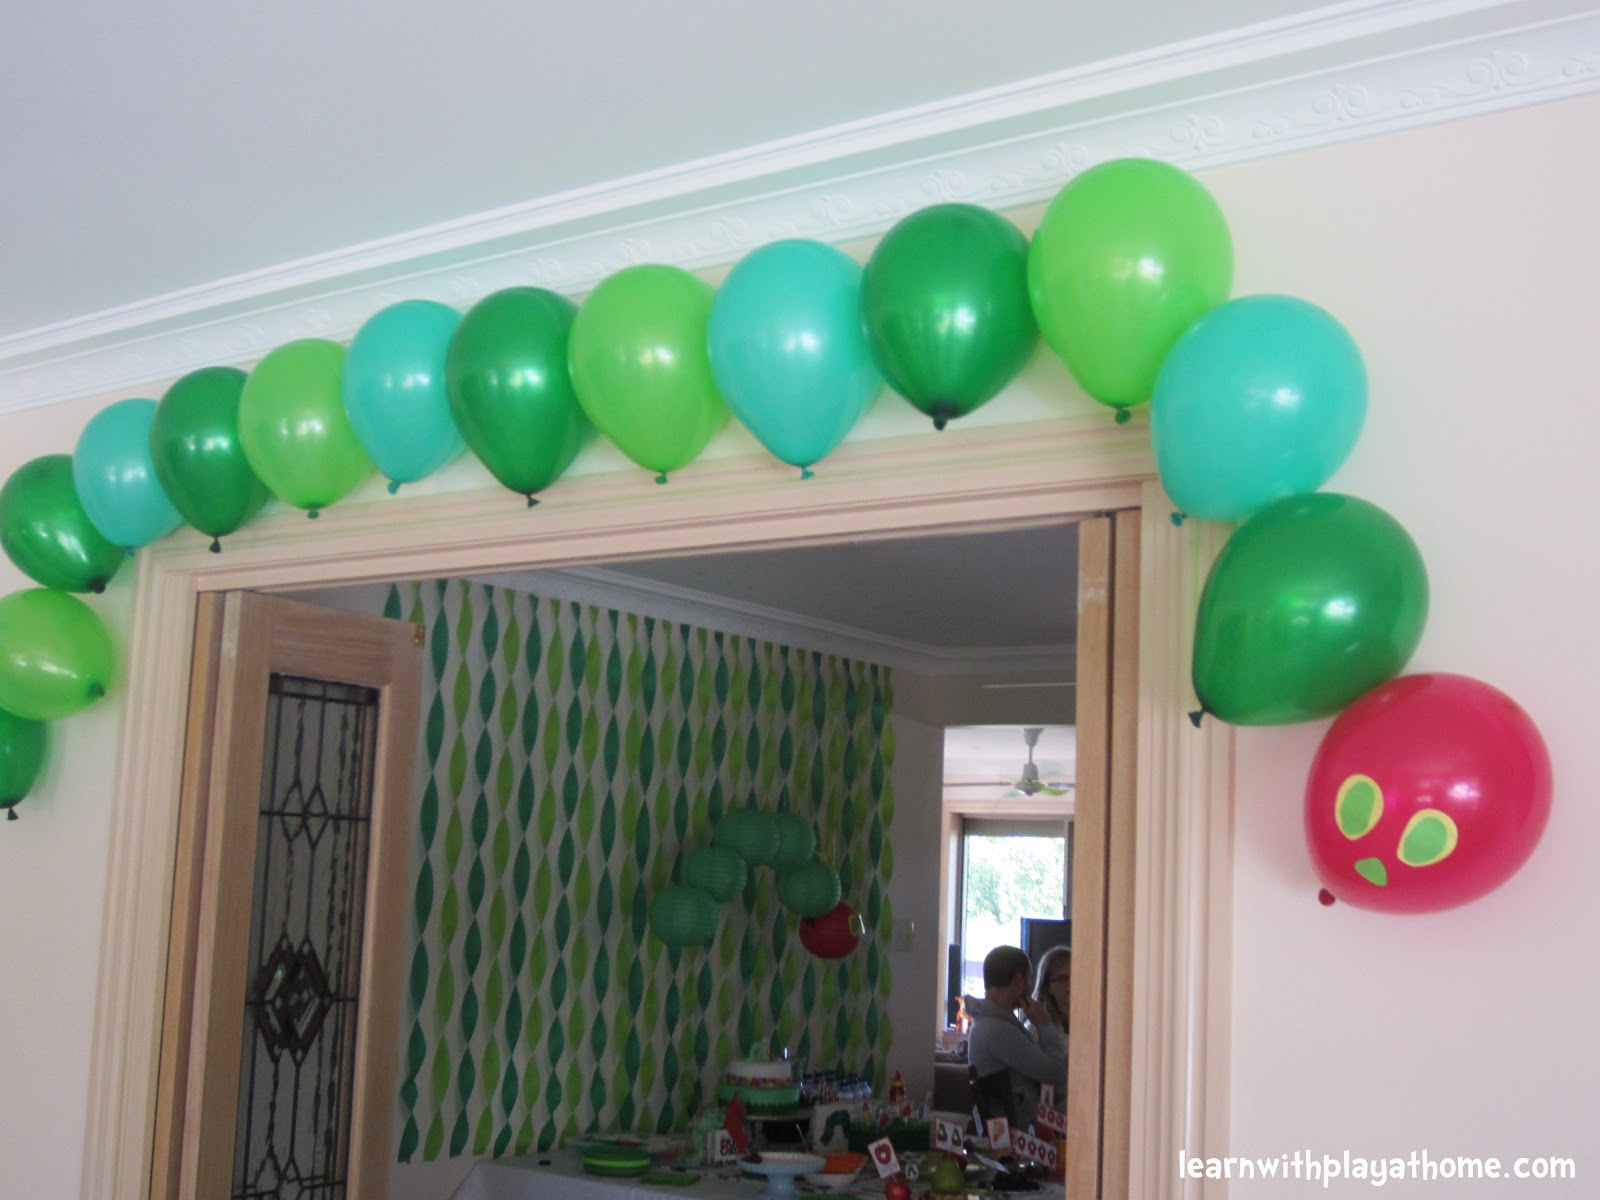 Learn with play at home diy party decorations for Simple balloon decoration ideas at home